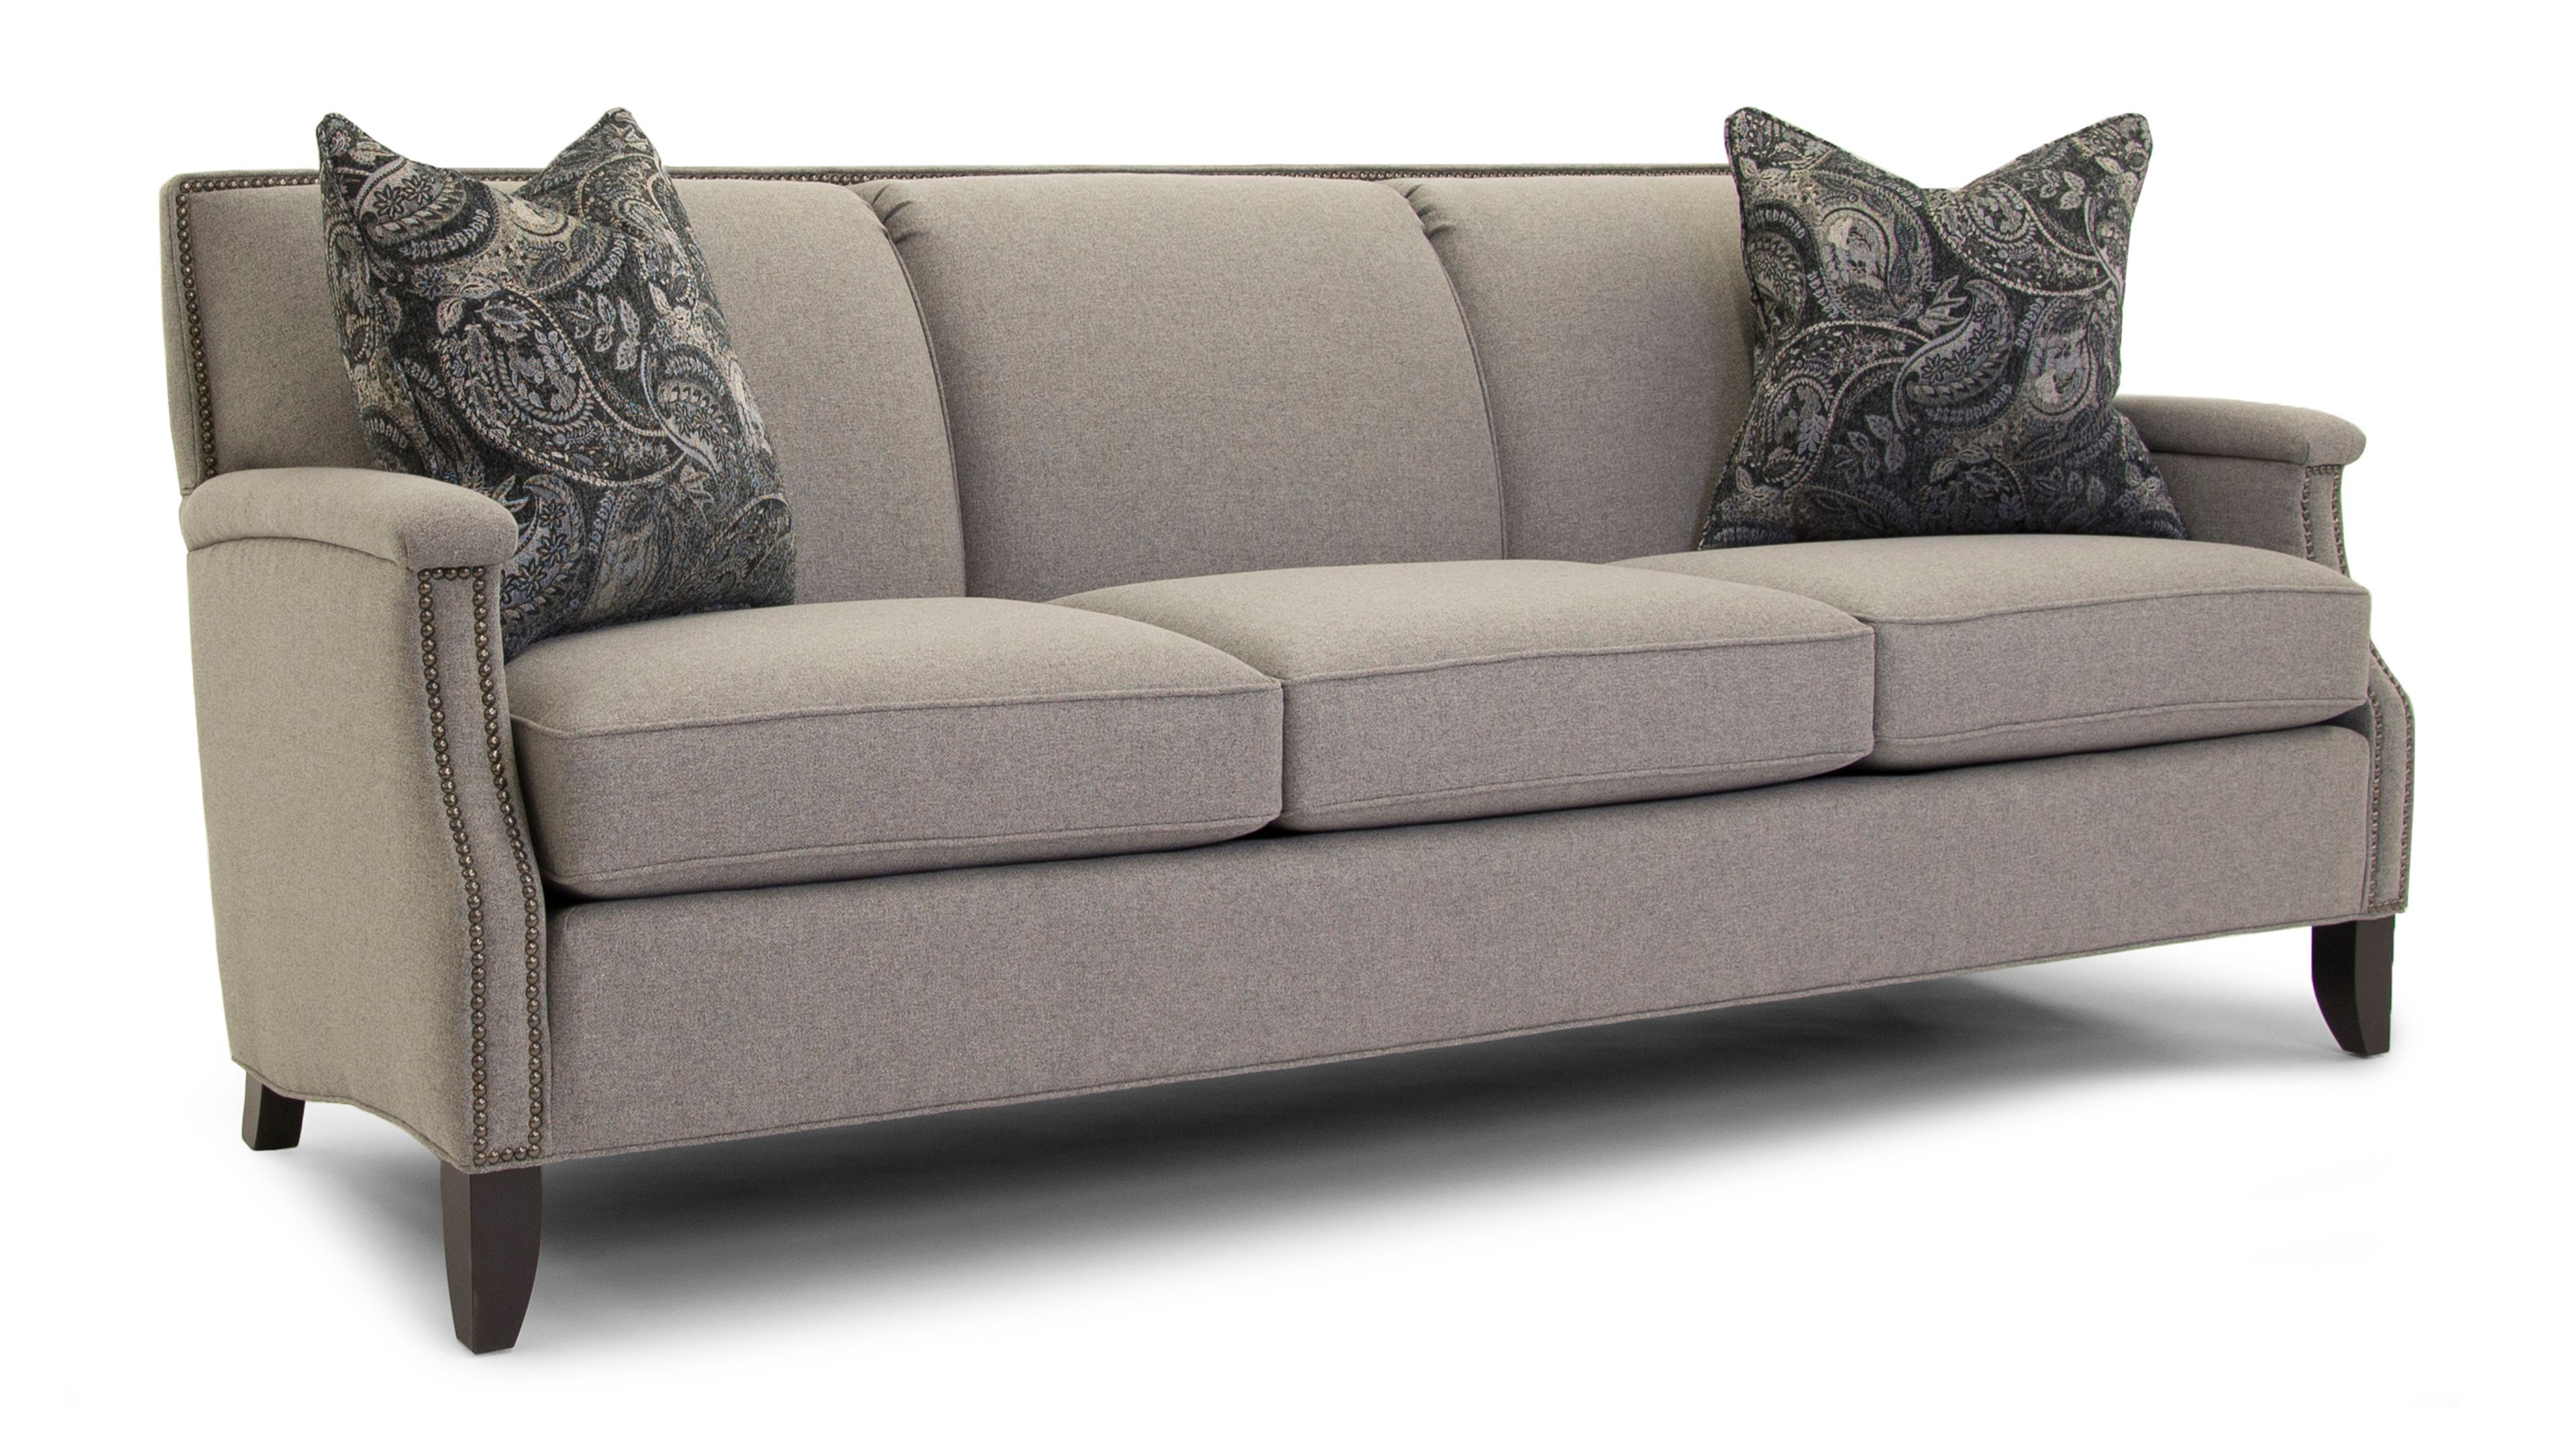 Smith Brothers Stationary Fabric Sofa 251 10 Sofa Living Room Furniture Collections Living Room Sofa Furniture